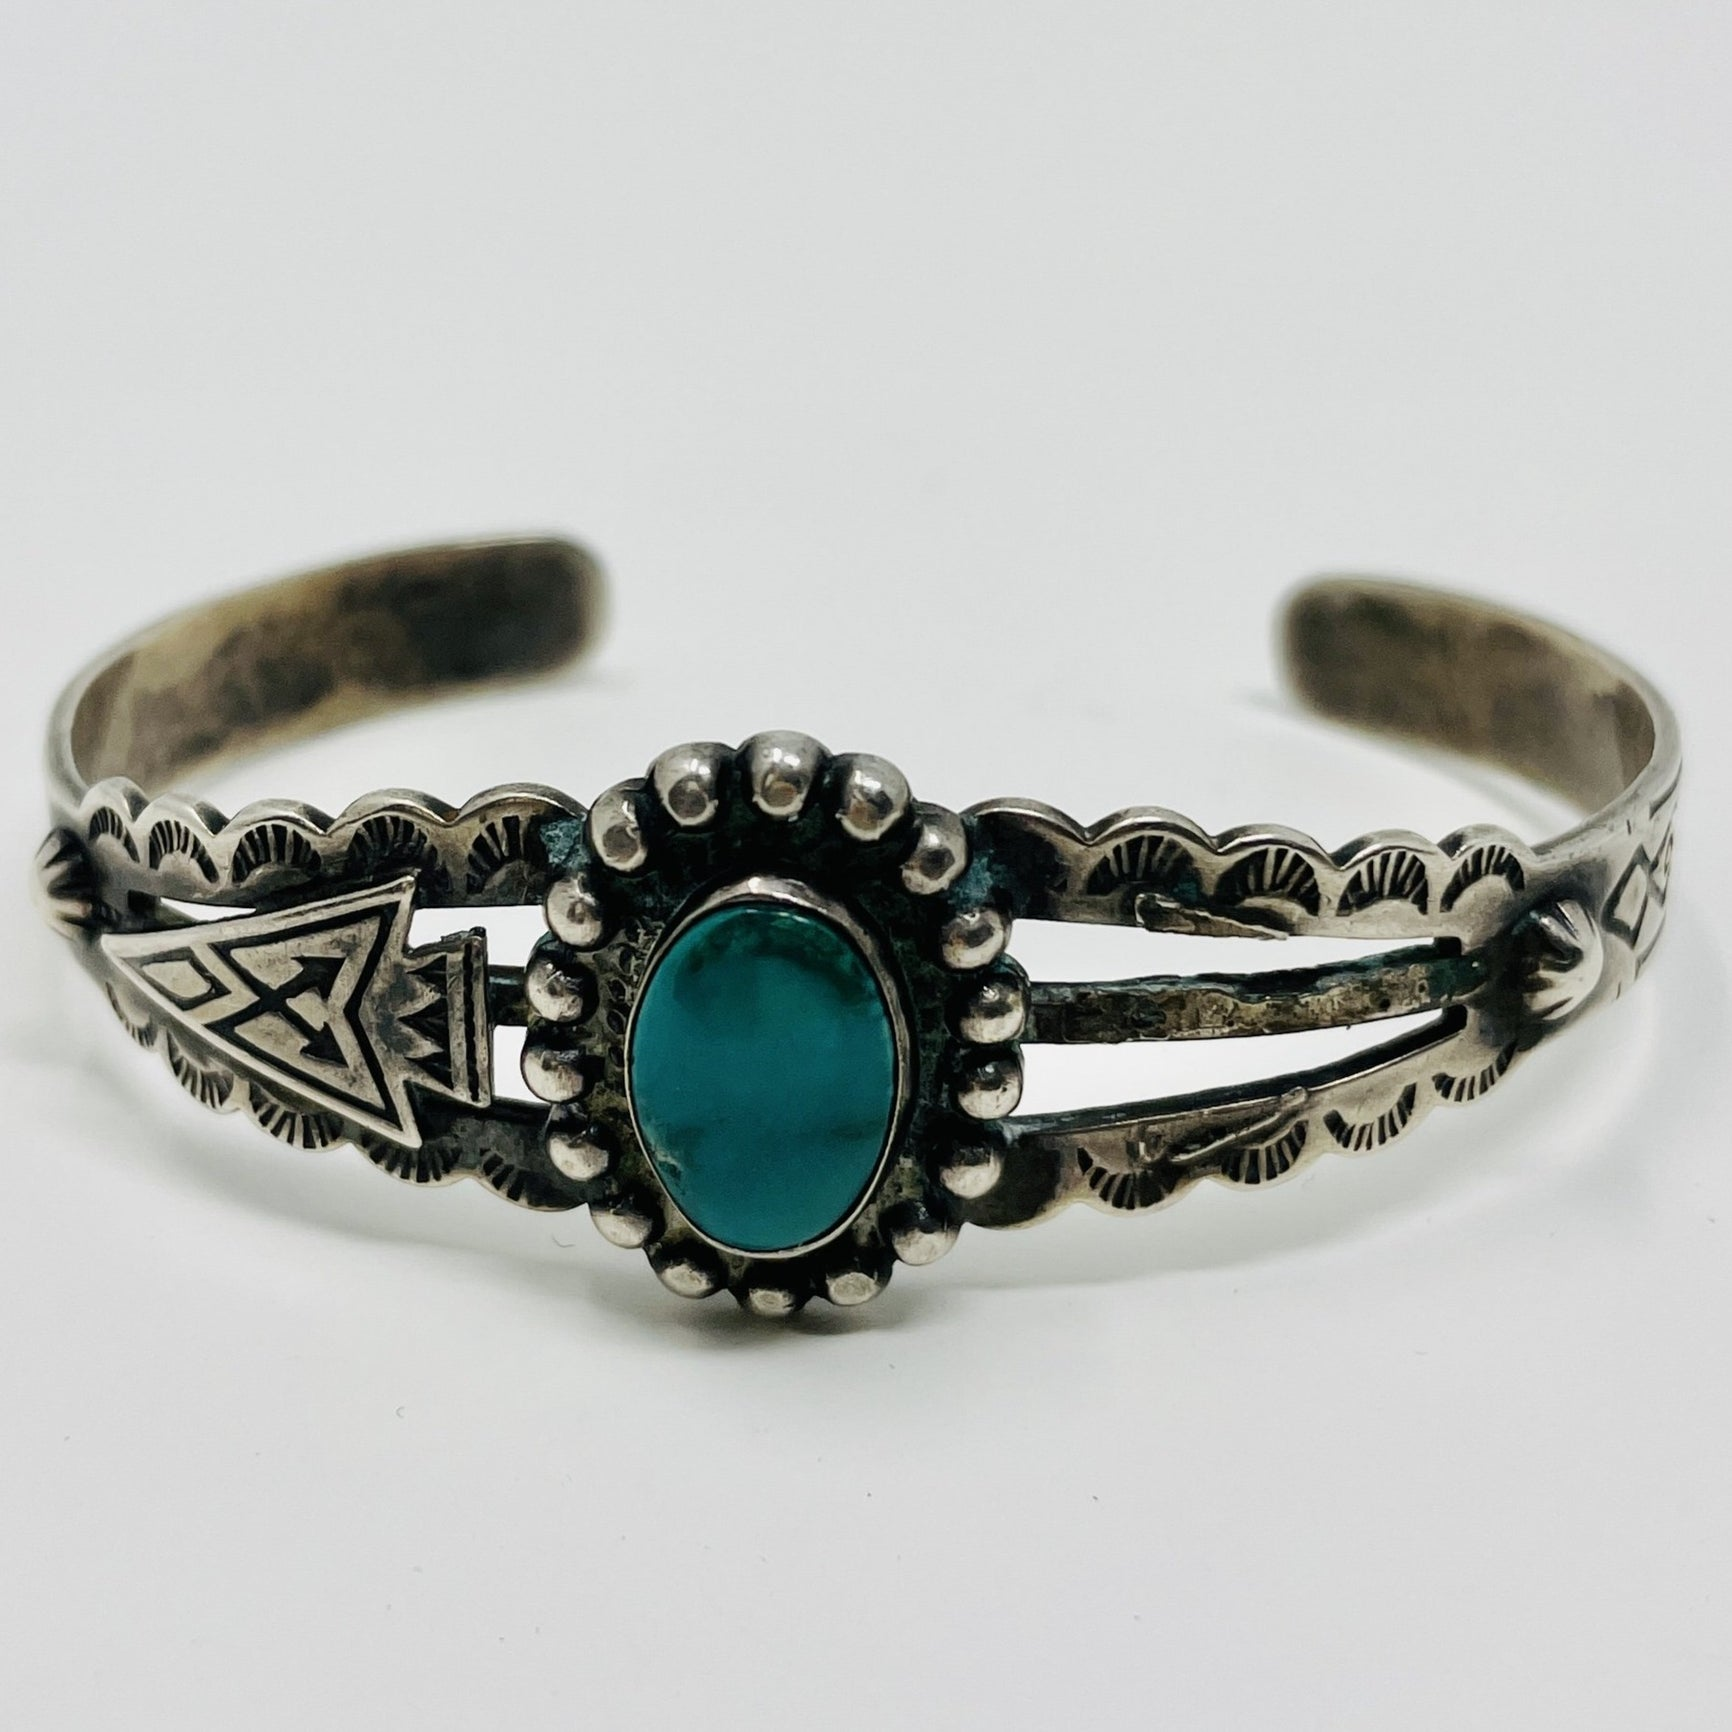 Fred Harvey Era Sterling Silver Cuff w Turquoise Stone, Repousse' and Stampwork